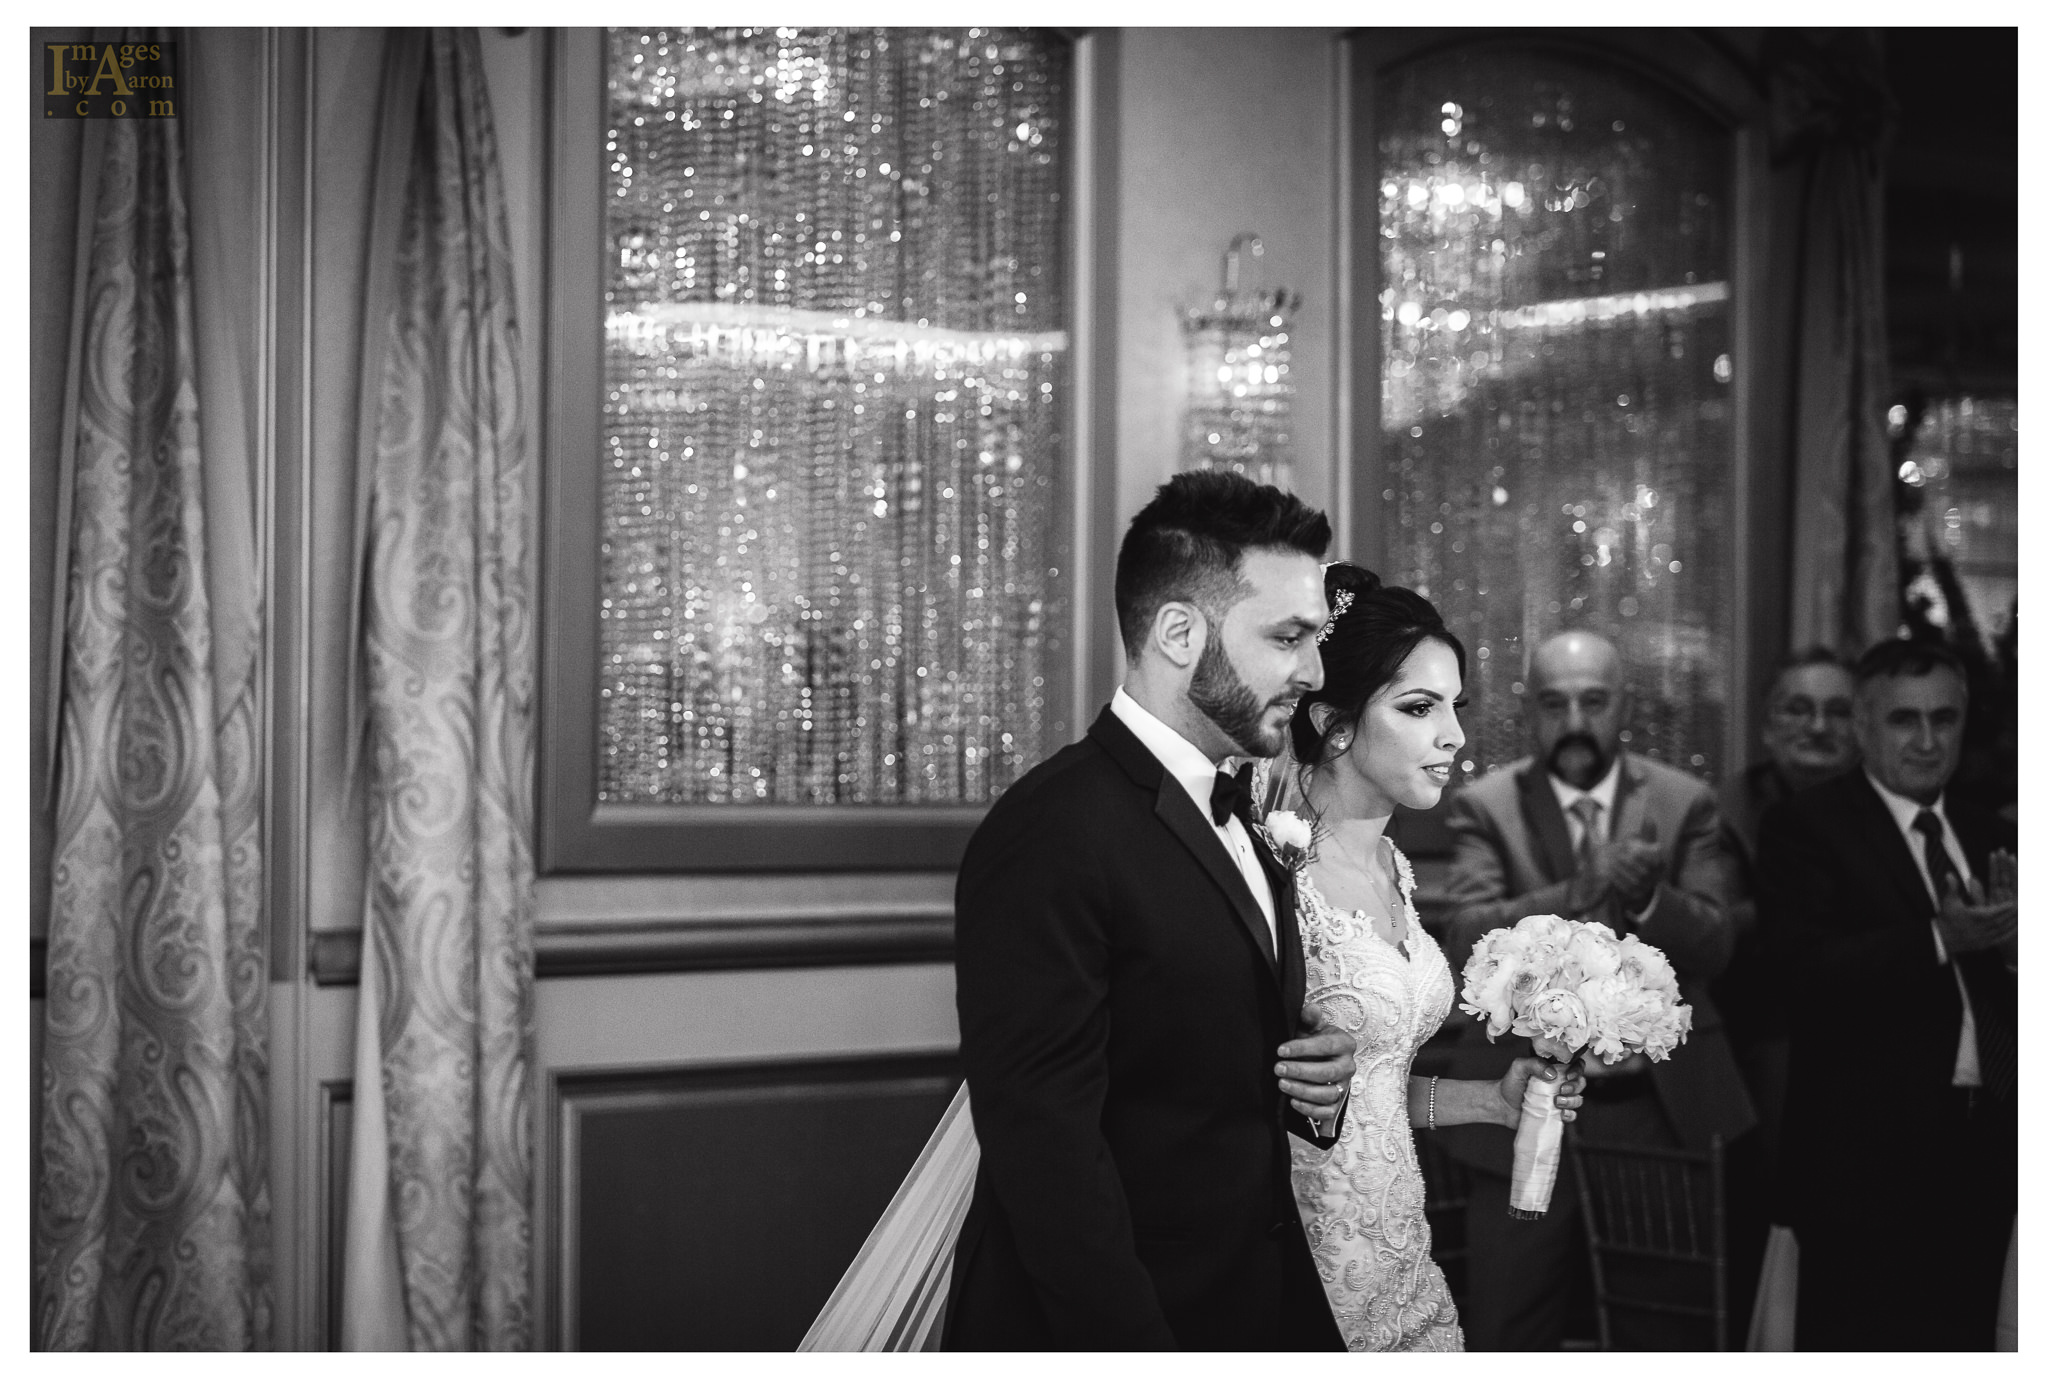 Gokce Turkish Wedding Reception New York Photographer Wedding Photography The Royal Manor-8.jpg